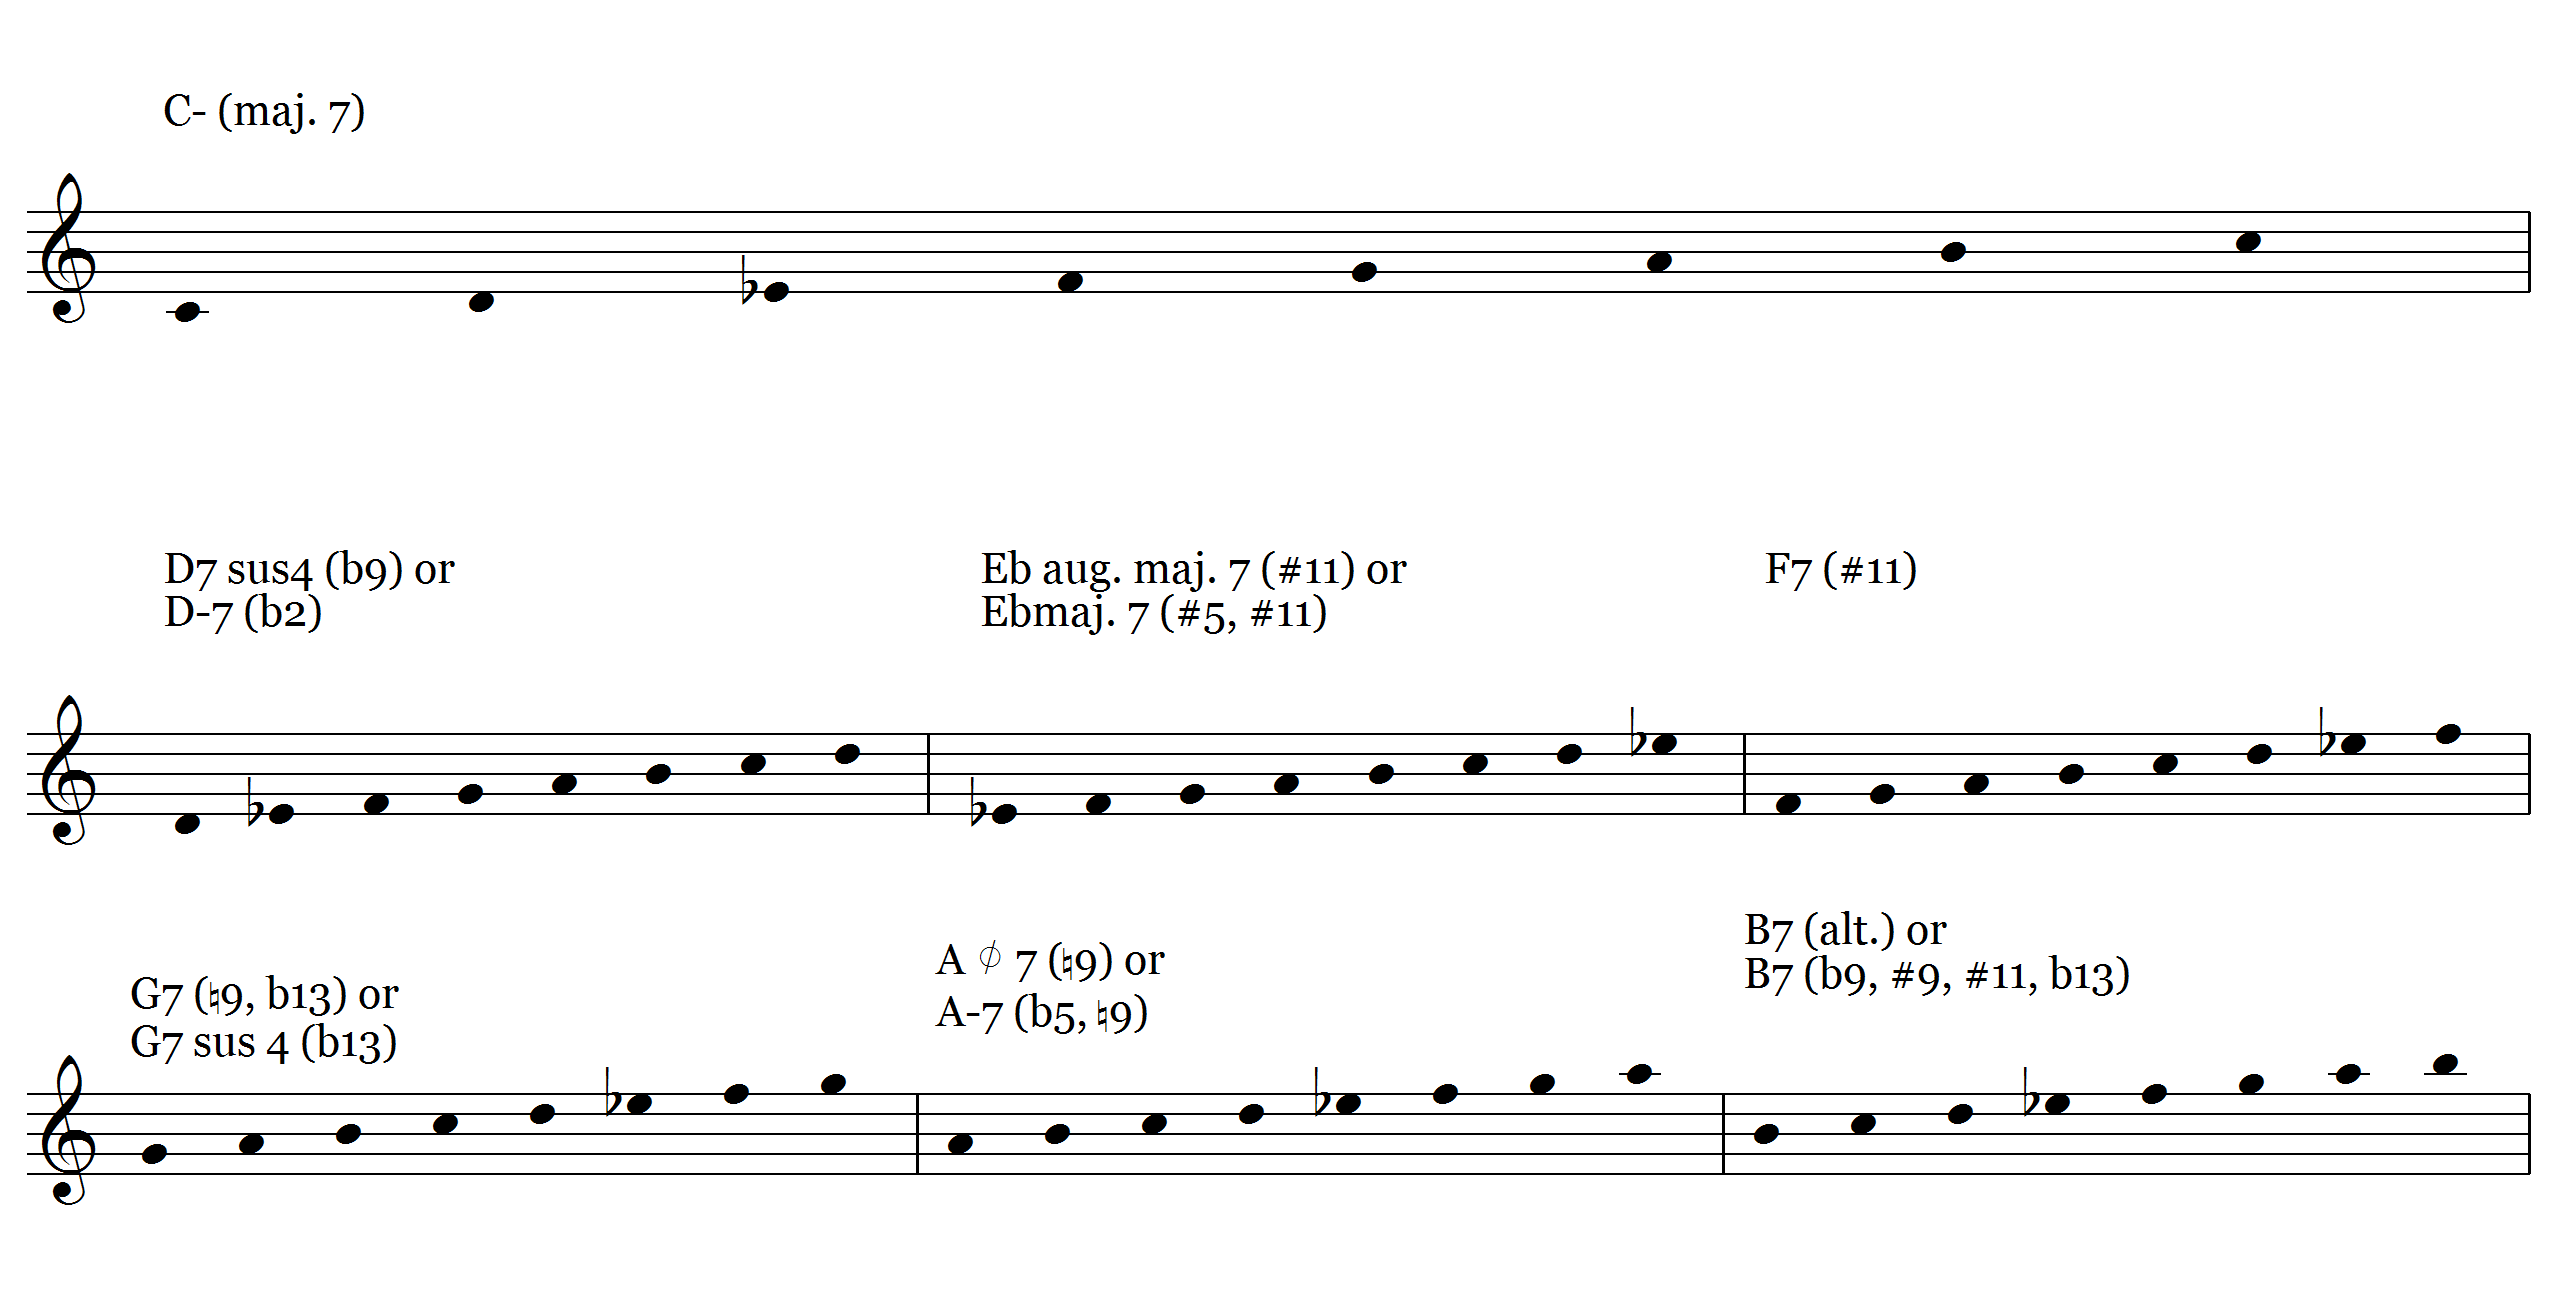 Ljs 86 7 chords you can play the melodic minor scale over learn using the melodic minor over 7 different chords hexwebz Image collections